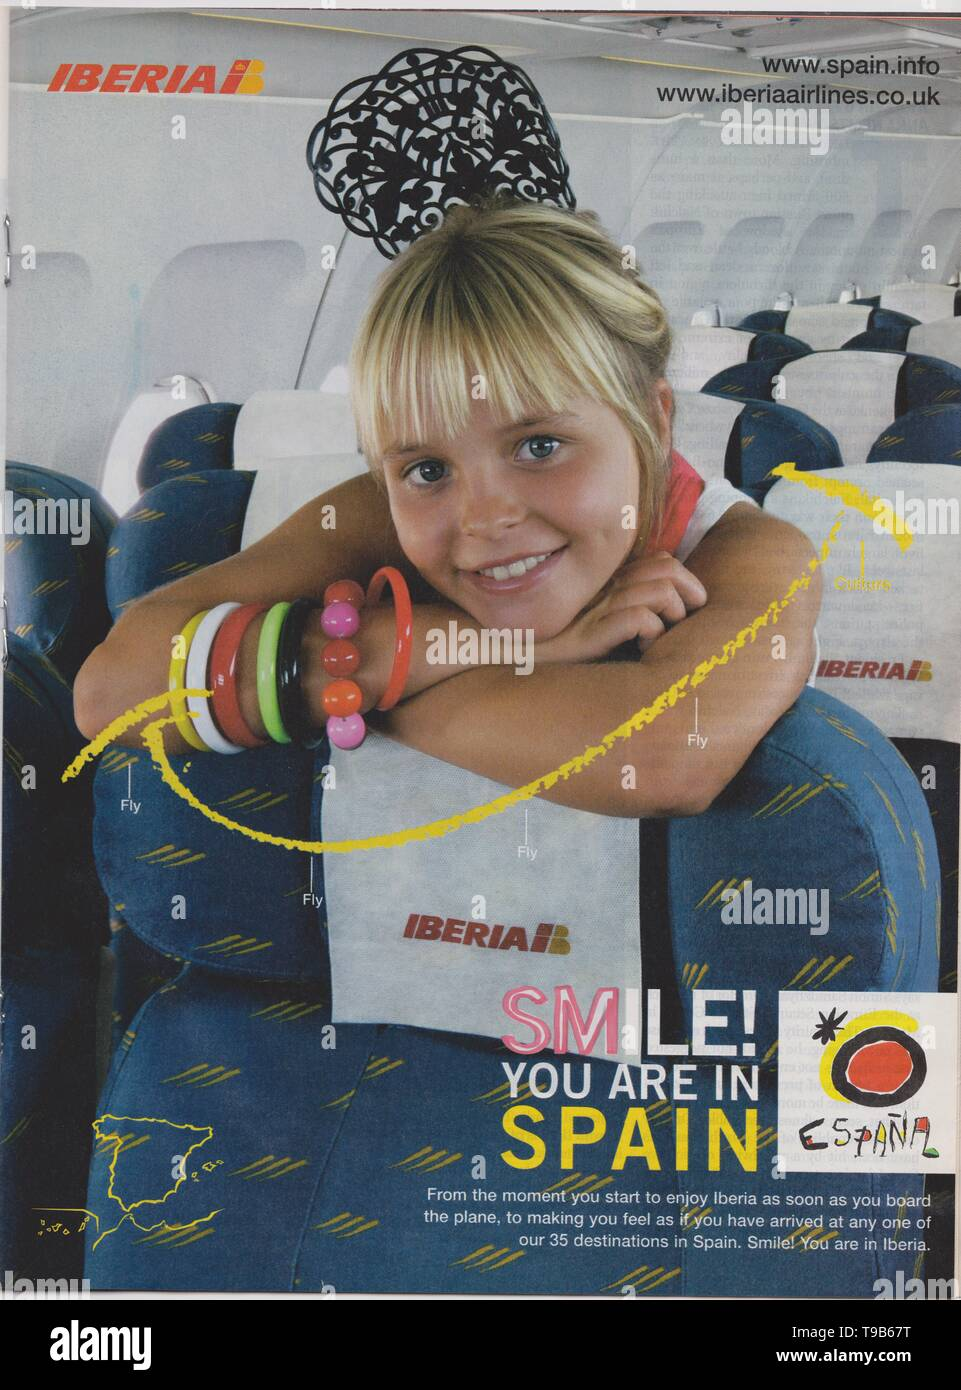 Lodz, Poland, April 13, 2019 poster advertising Iberia Airlines in magazine from 2005, SMILE! YOU ARE IN SPAIN slogan, advertisement, creative advert - Stock Image